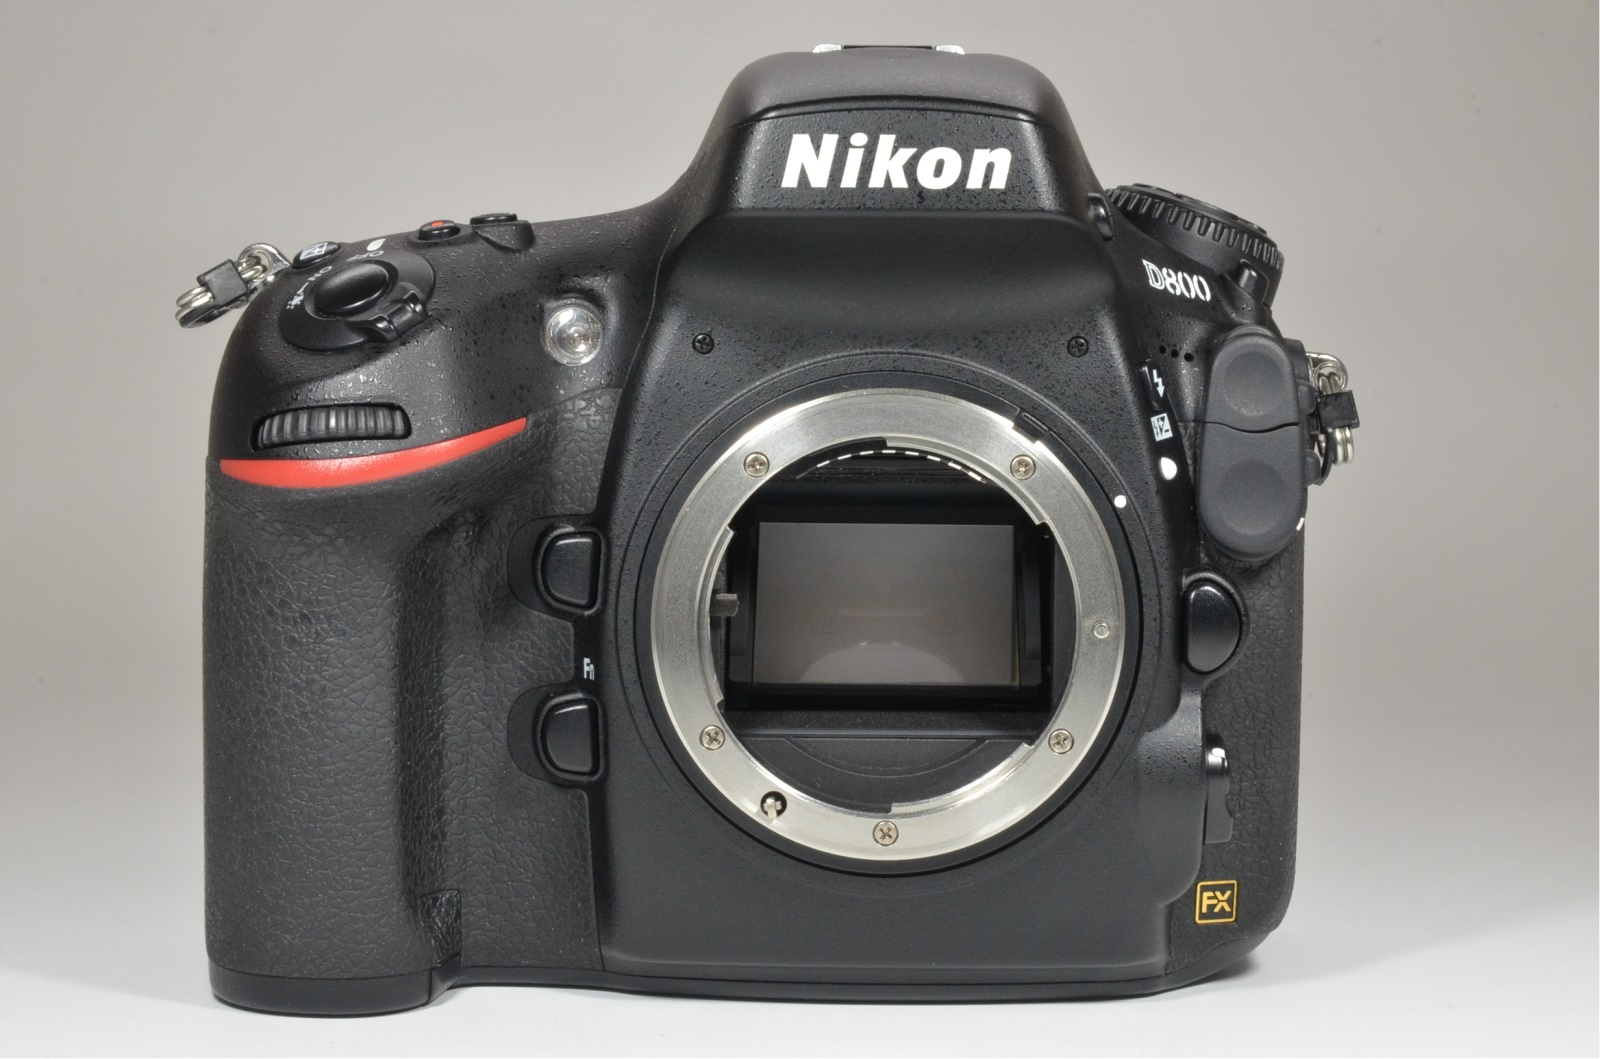 nikon d800 36.3mp digital slr camera body shutter count 9040 from japan